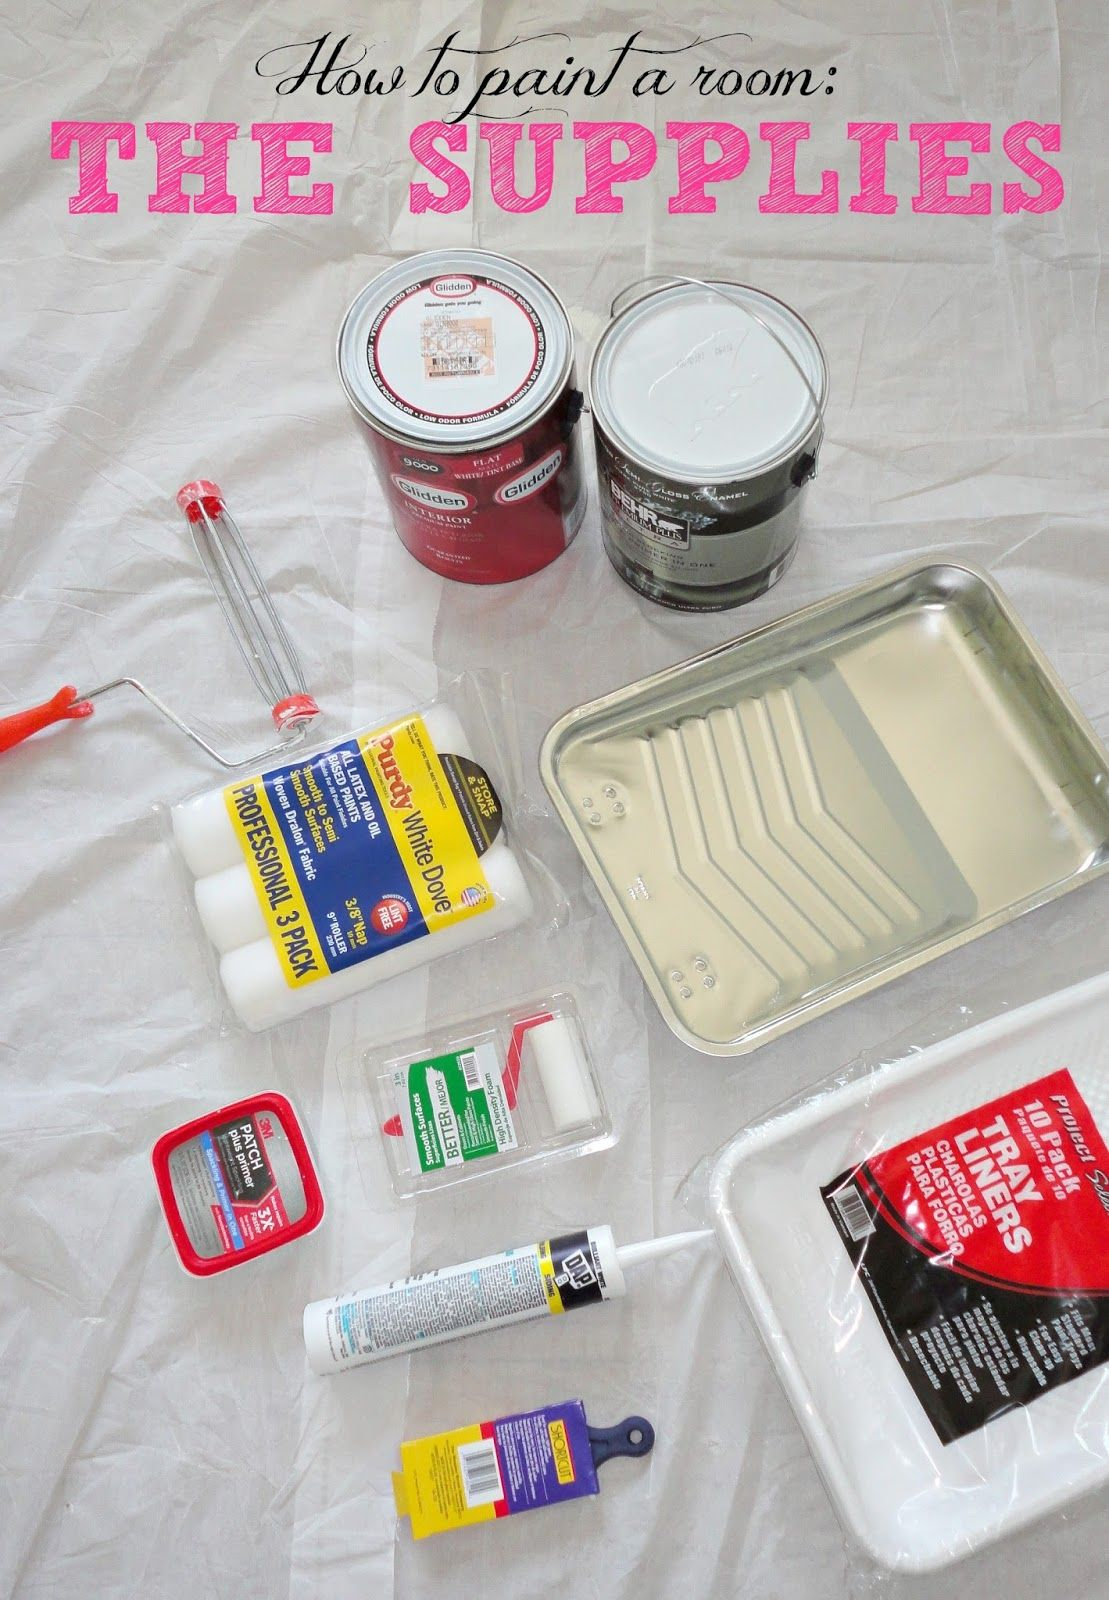 How To Paint a Room in 10 Easy Steps: a complete tutorial with ...